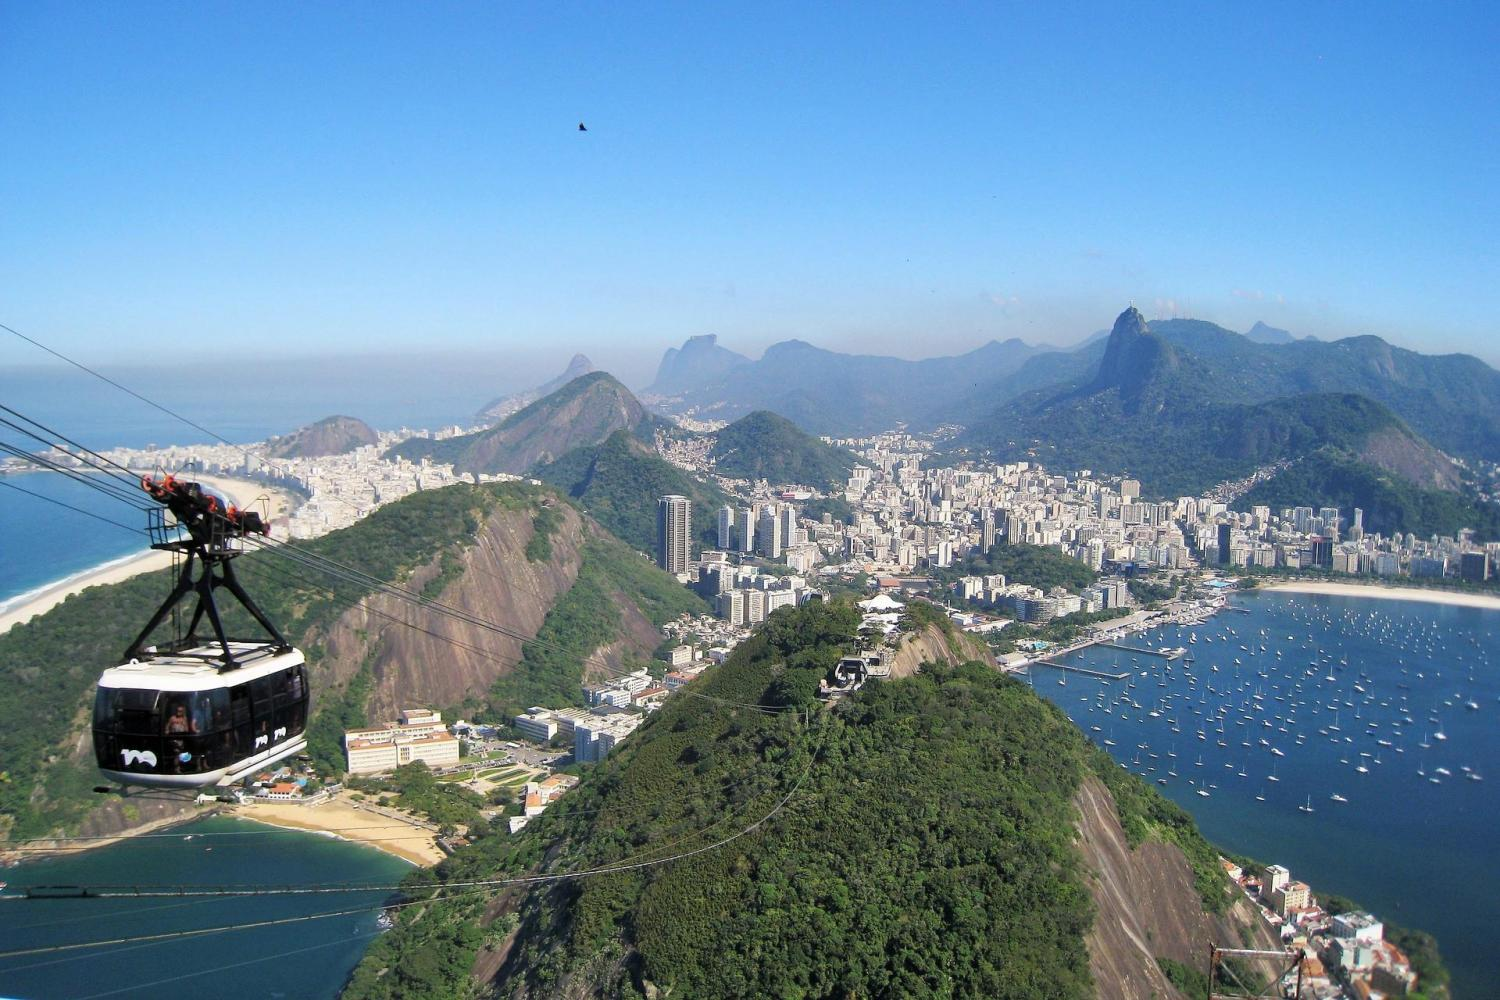 Ride a cable car to Morro de Urca and Sugar Loaf Mountain